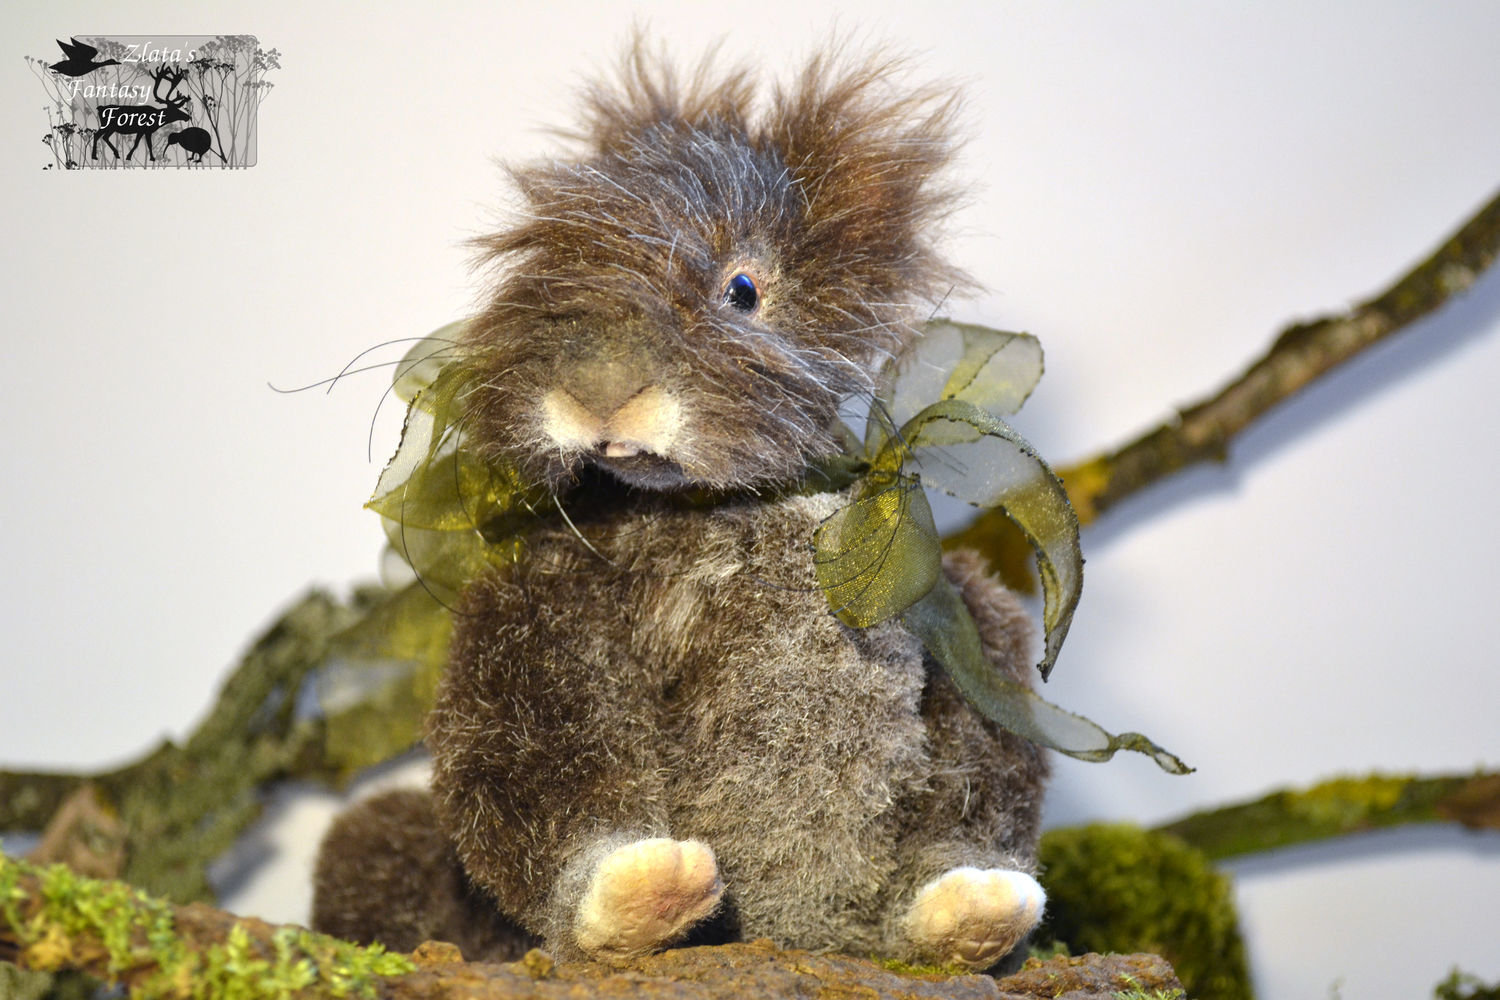 Toy animals, handmade. Fair Masters - realistic rabbit. To buy Rabbit in the style of Teddy nature. 100% Handmade.